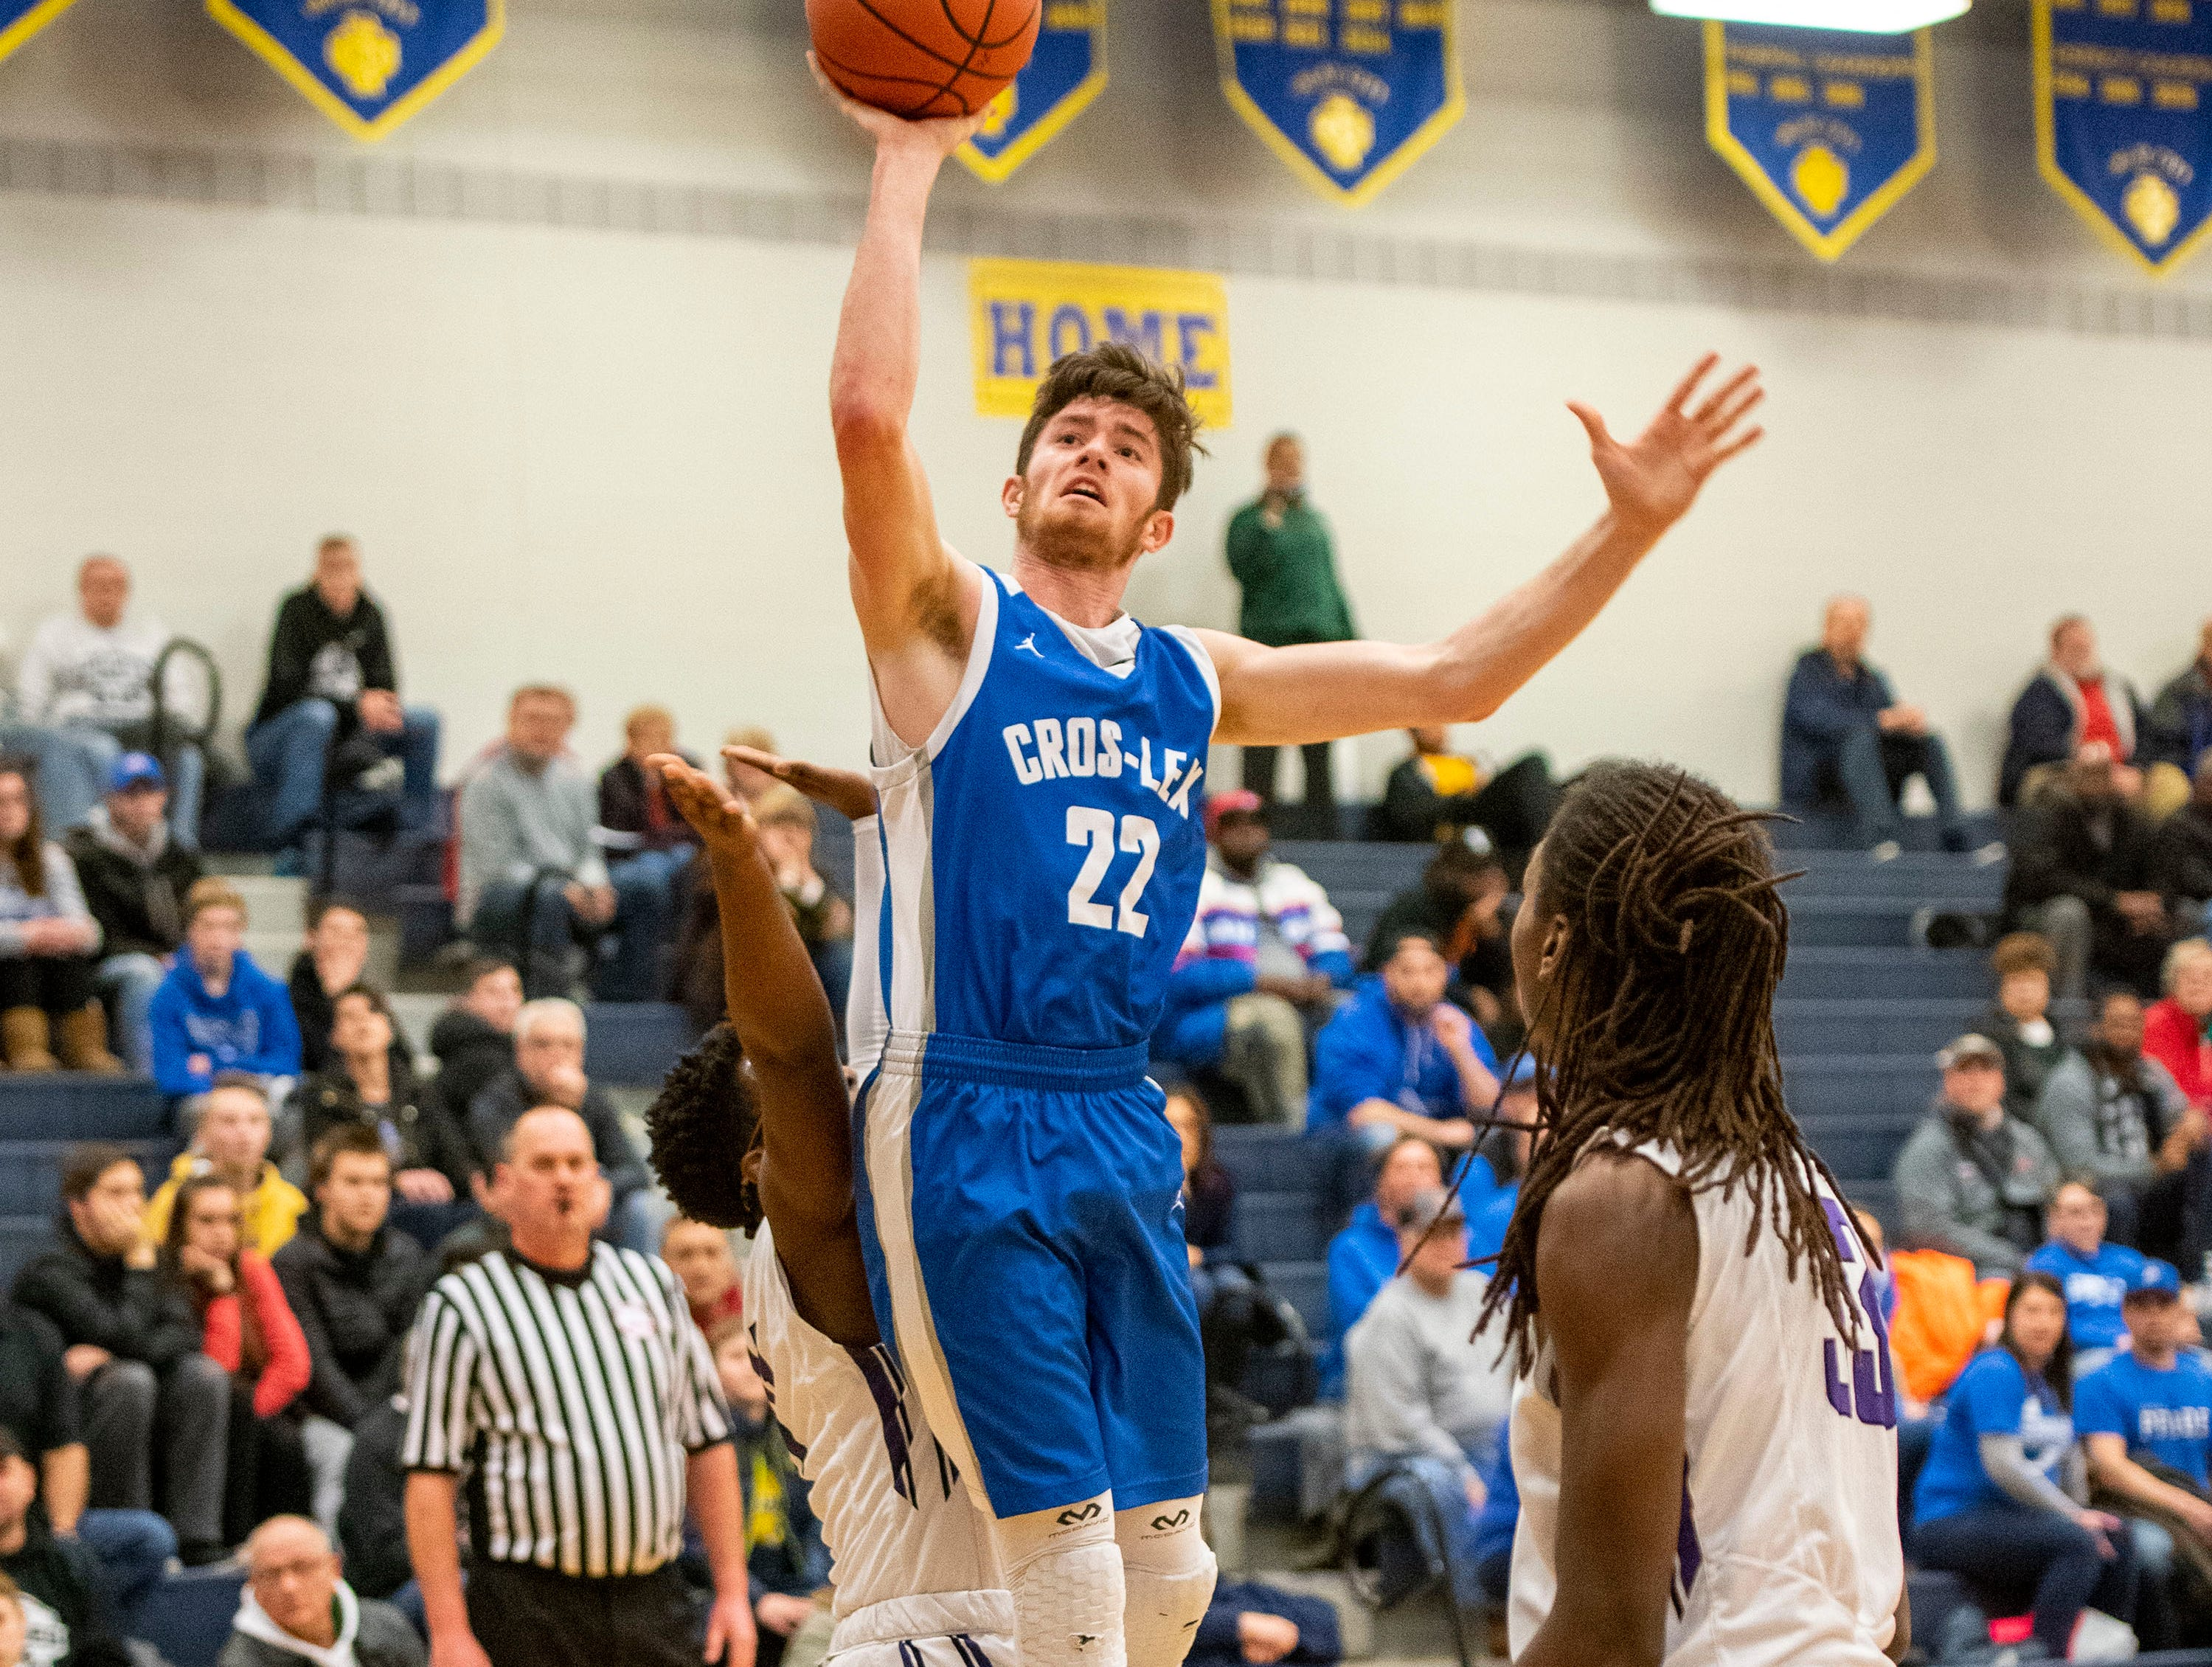 Cros-Lex High School's Tate Shaffer (22) jumps to score in the MHSAA Division 2 regional basketball game against Pontiac High School Tuesday, March 5, 2019 at Imlay City High School.